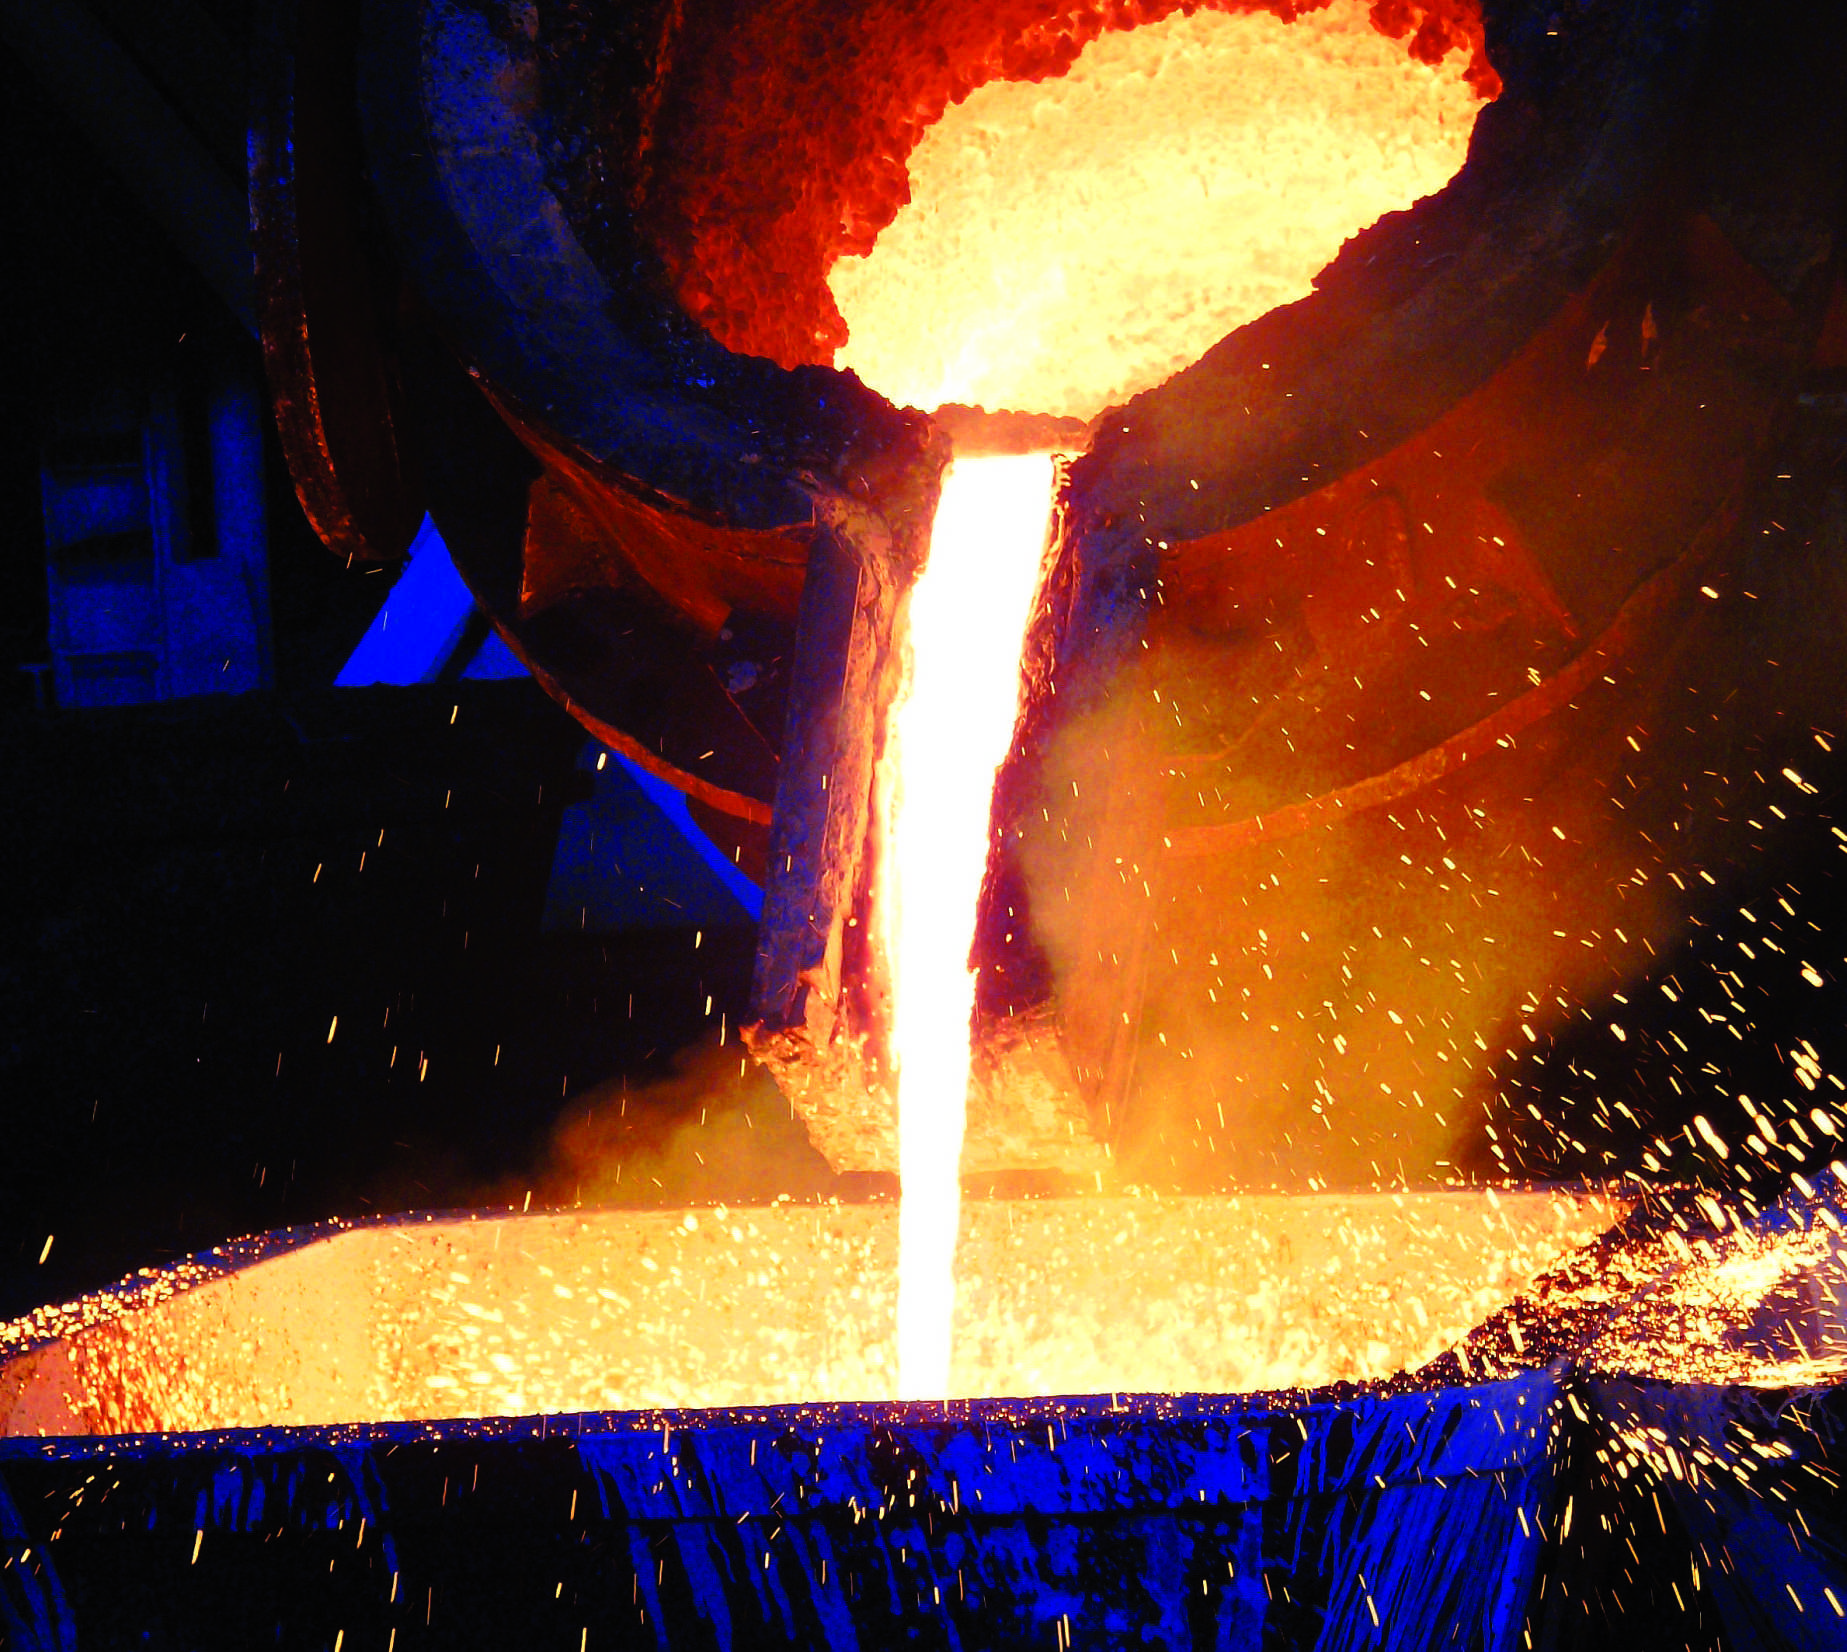 Can steel sector beat the 'Stress'?